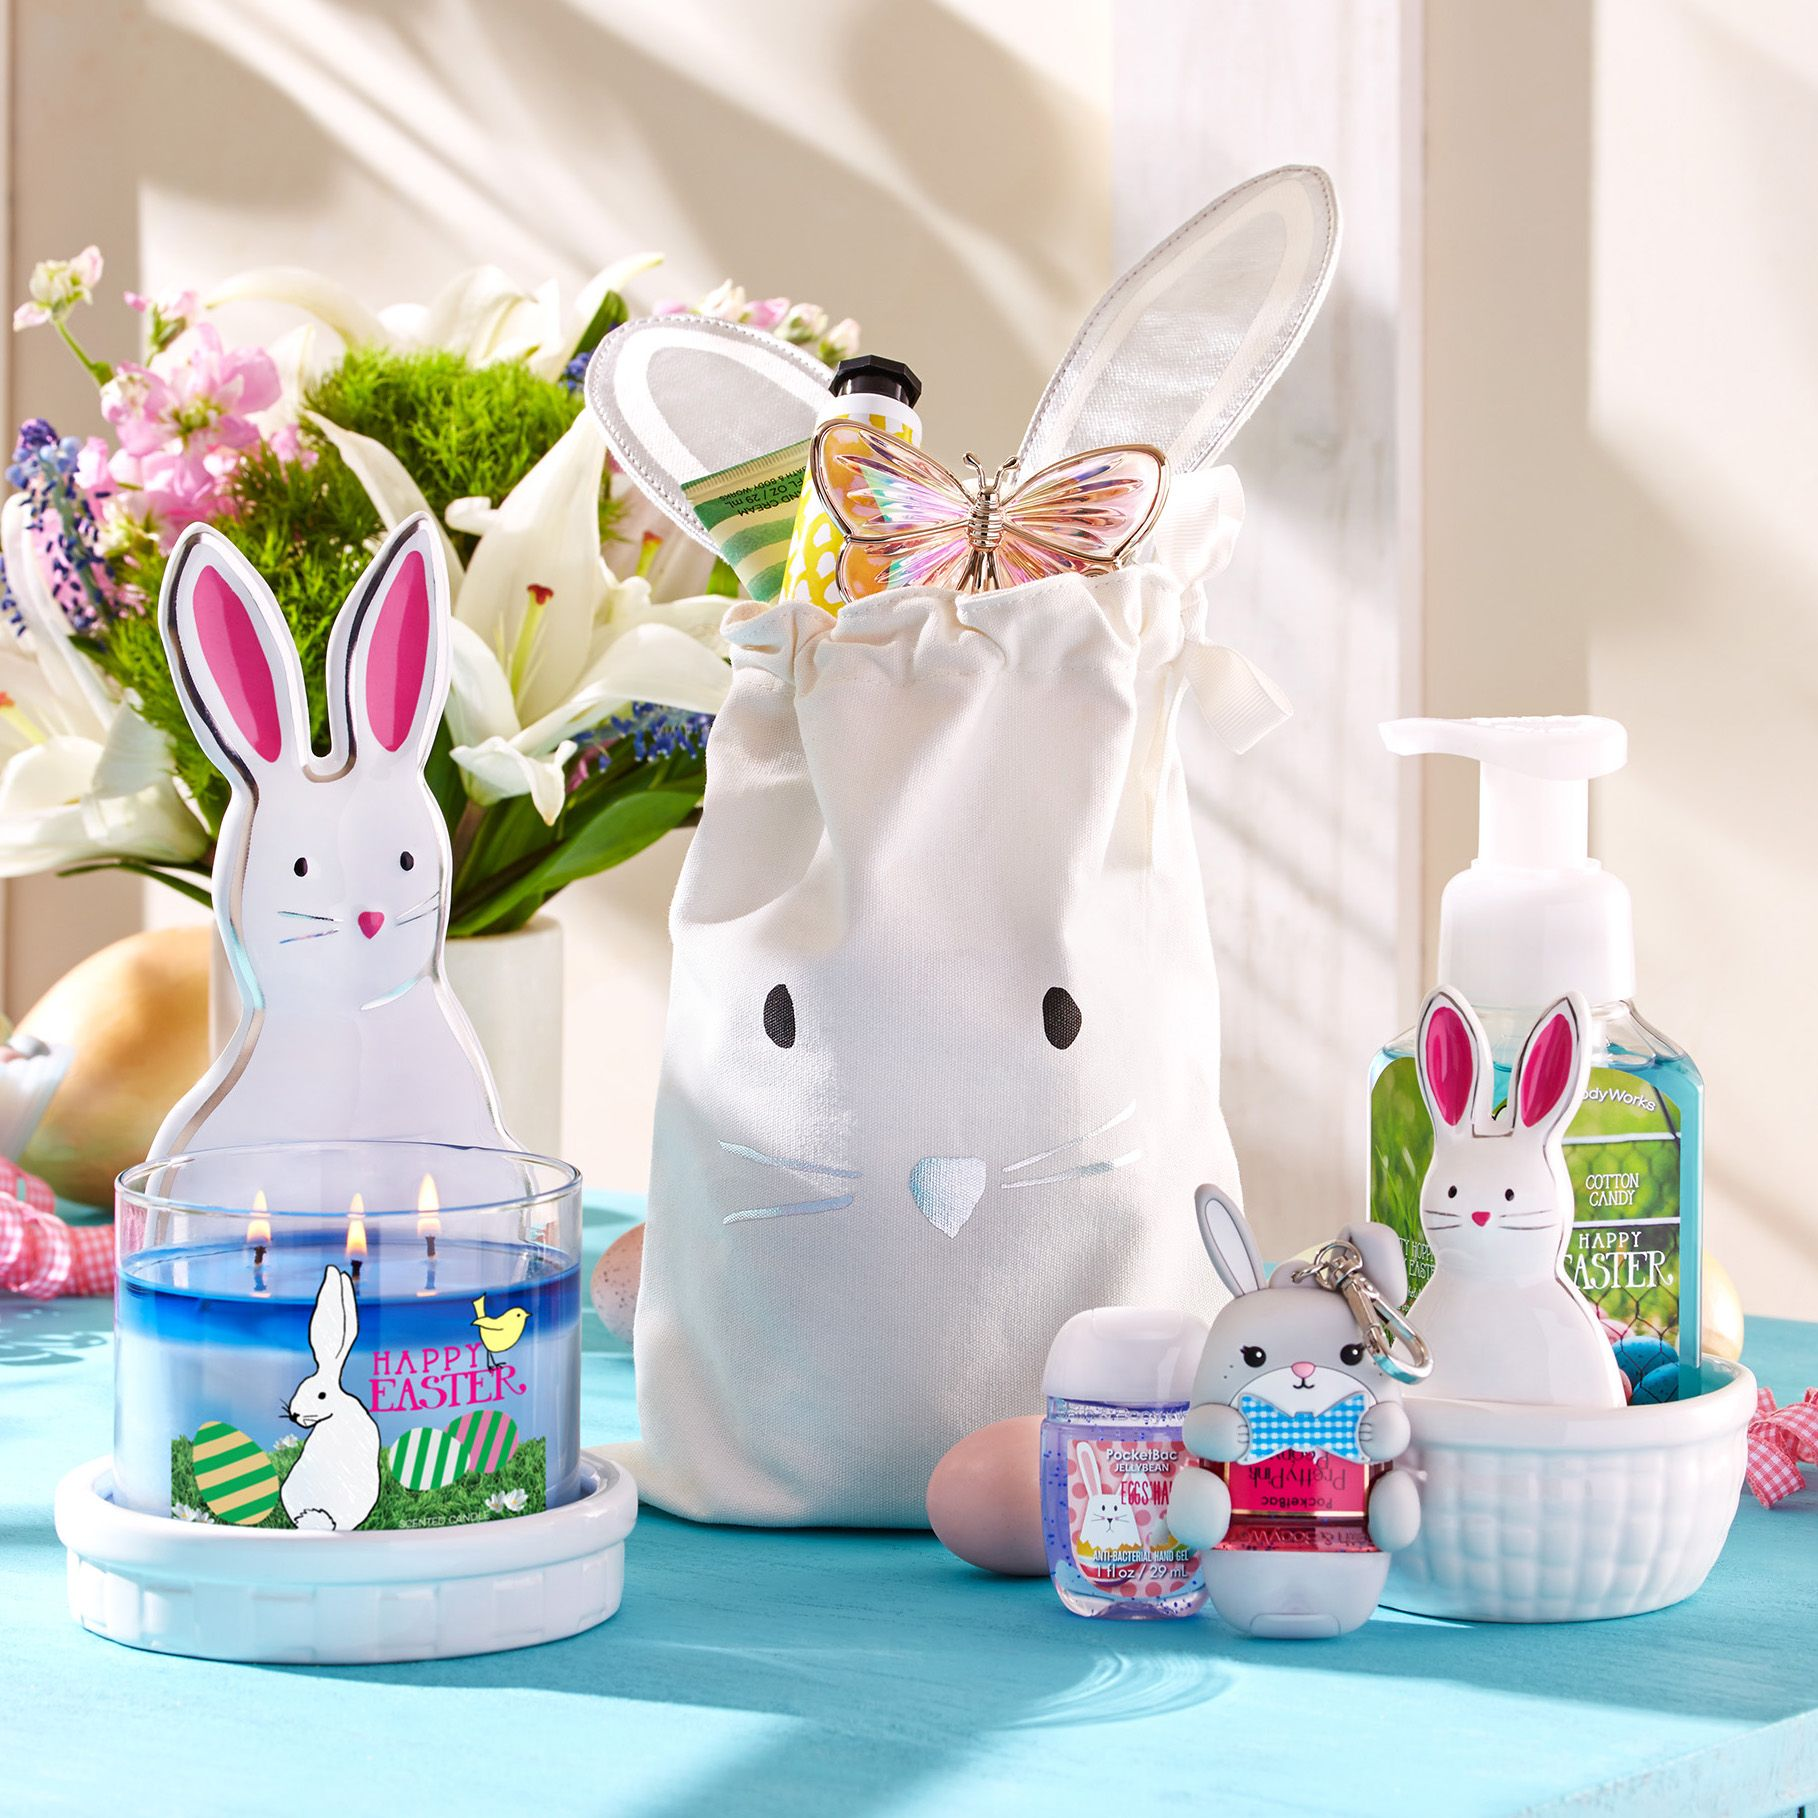 Easter bunny picks for your home!  Bath body works candles